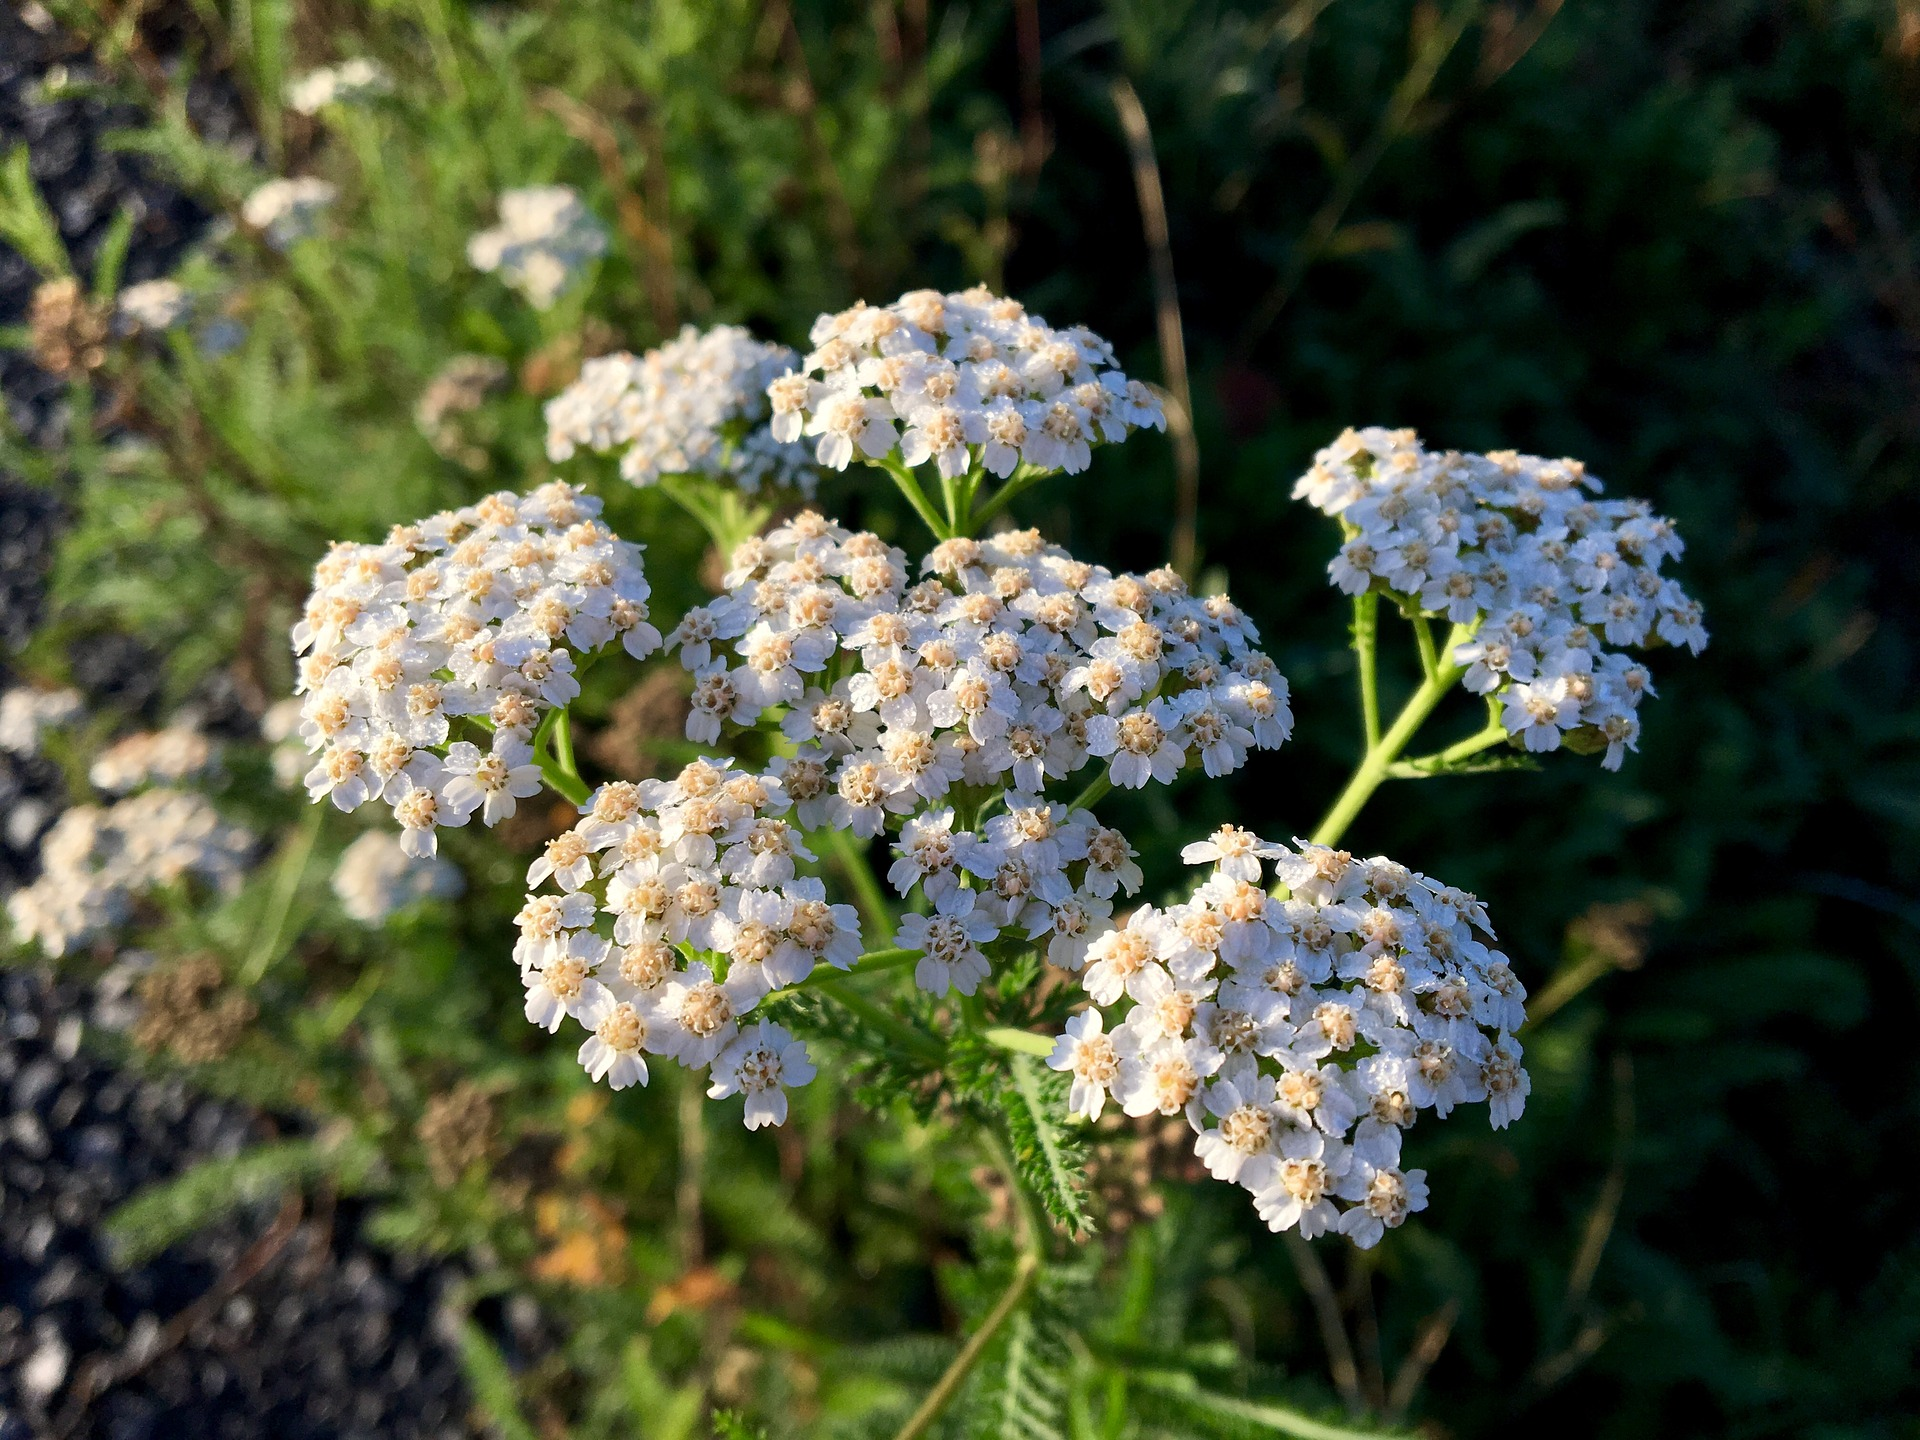 15 Reasons Why You Should Consider Growing Yarrow in Your Garden